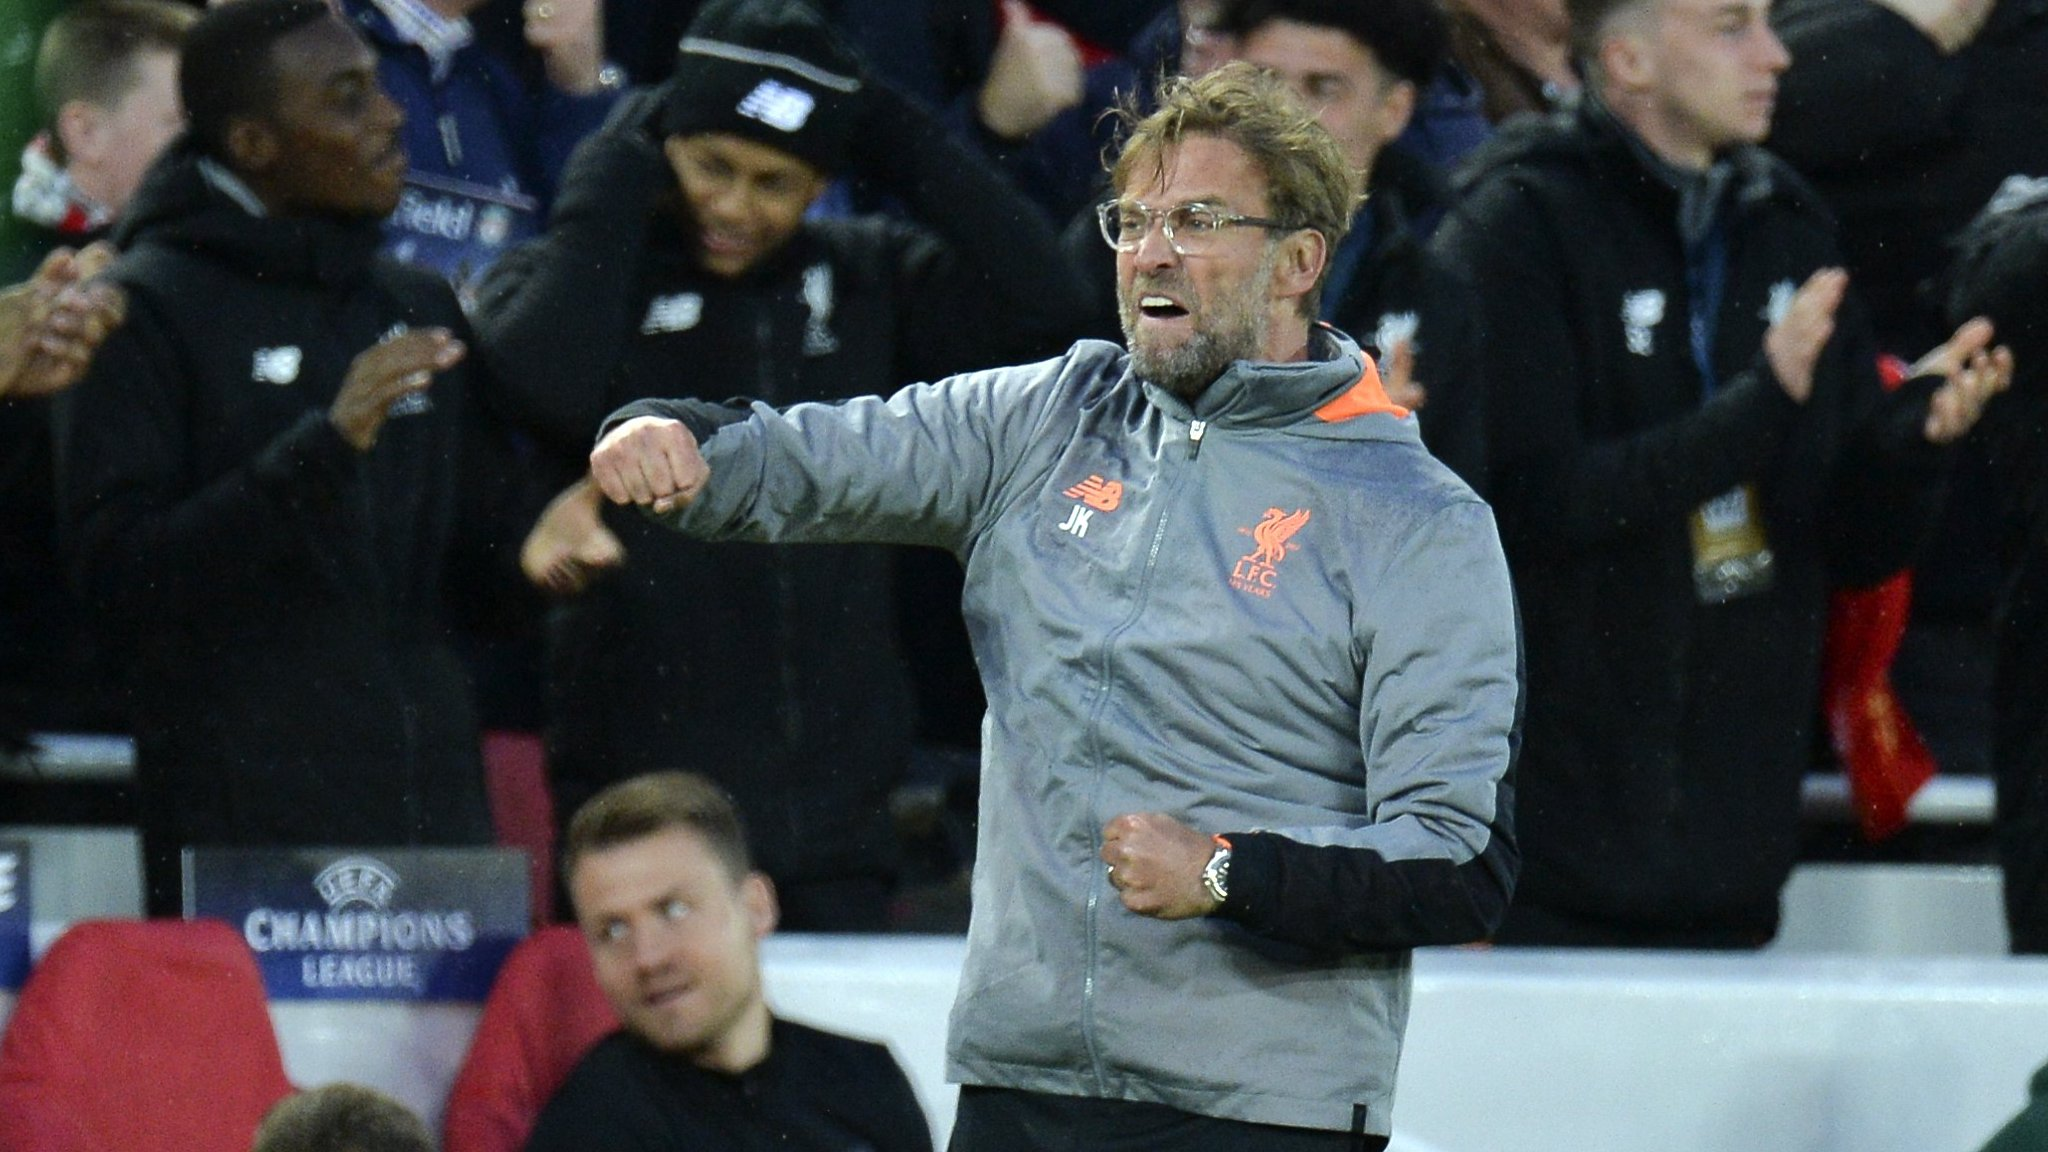 Late Roma goals don't make big difference - Klopp